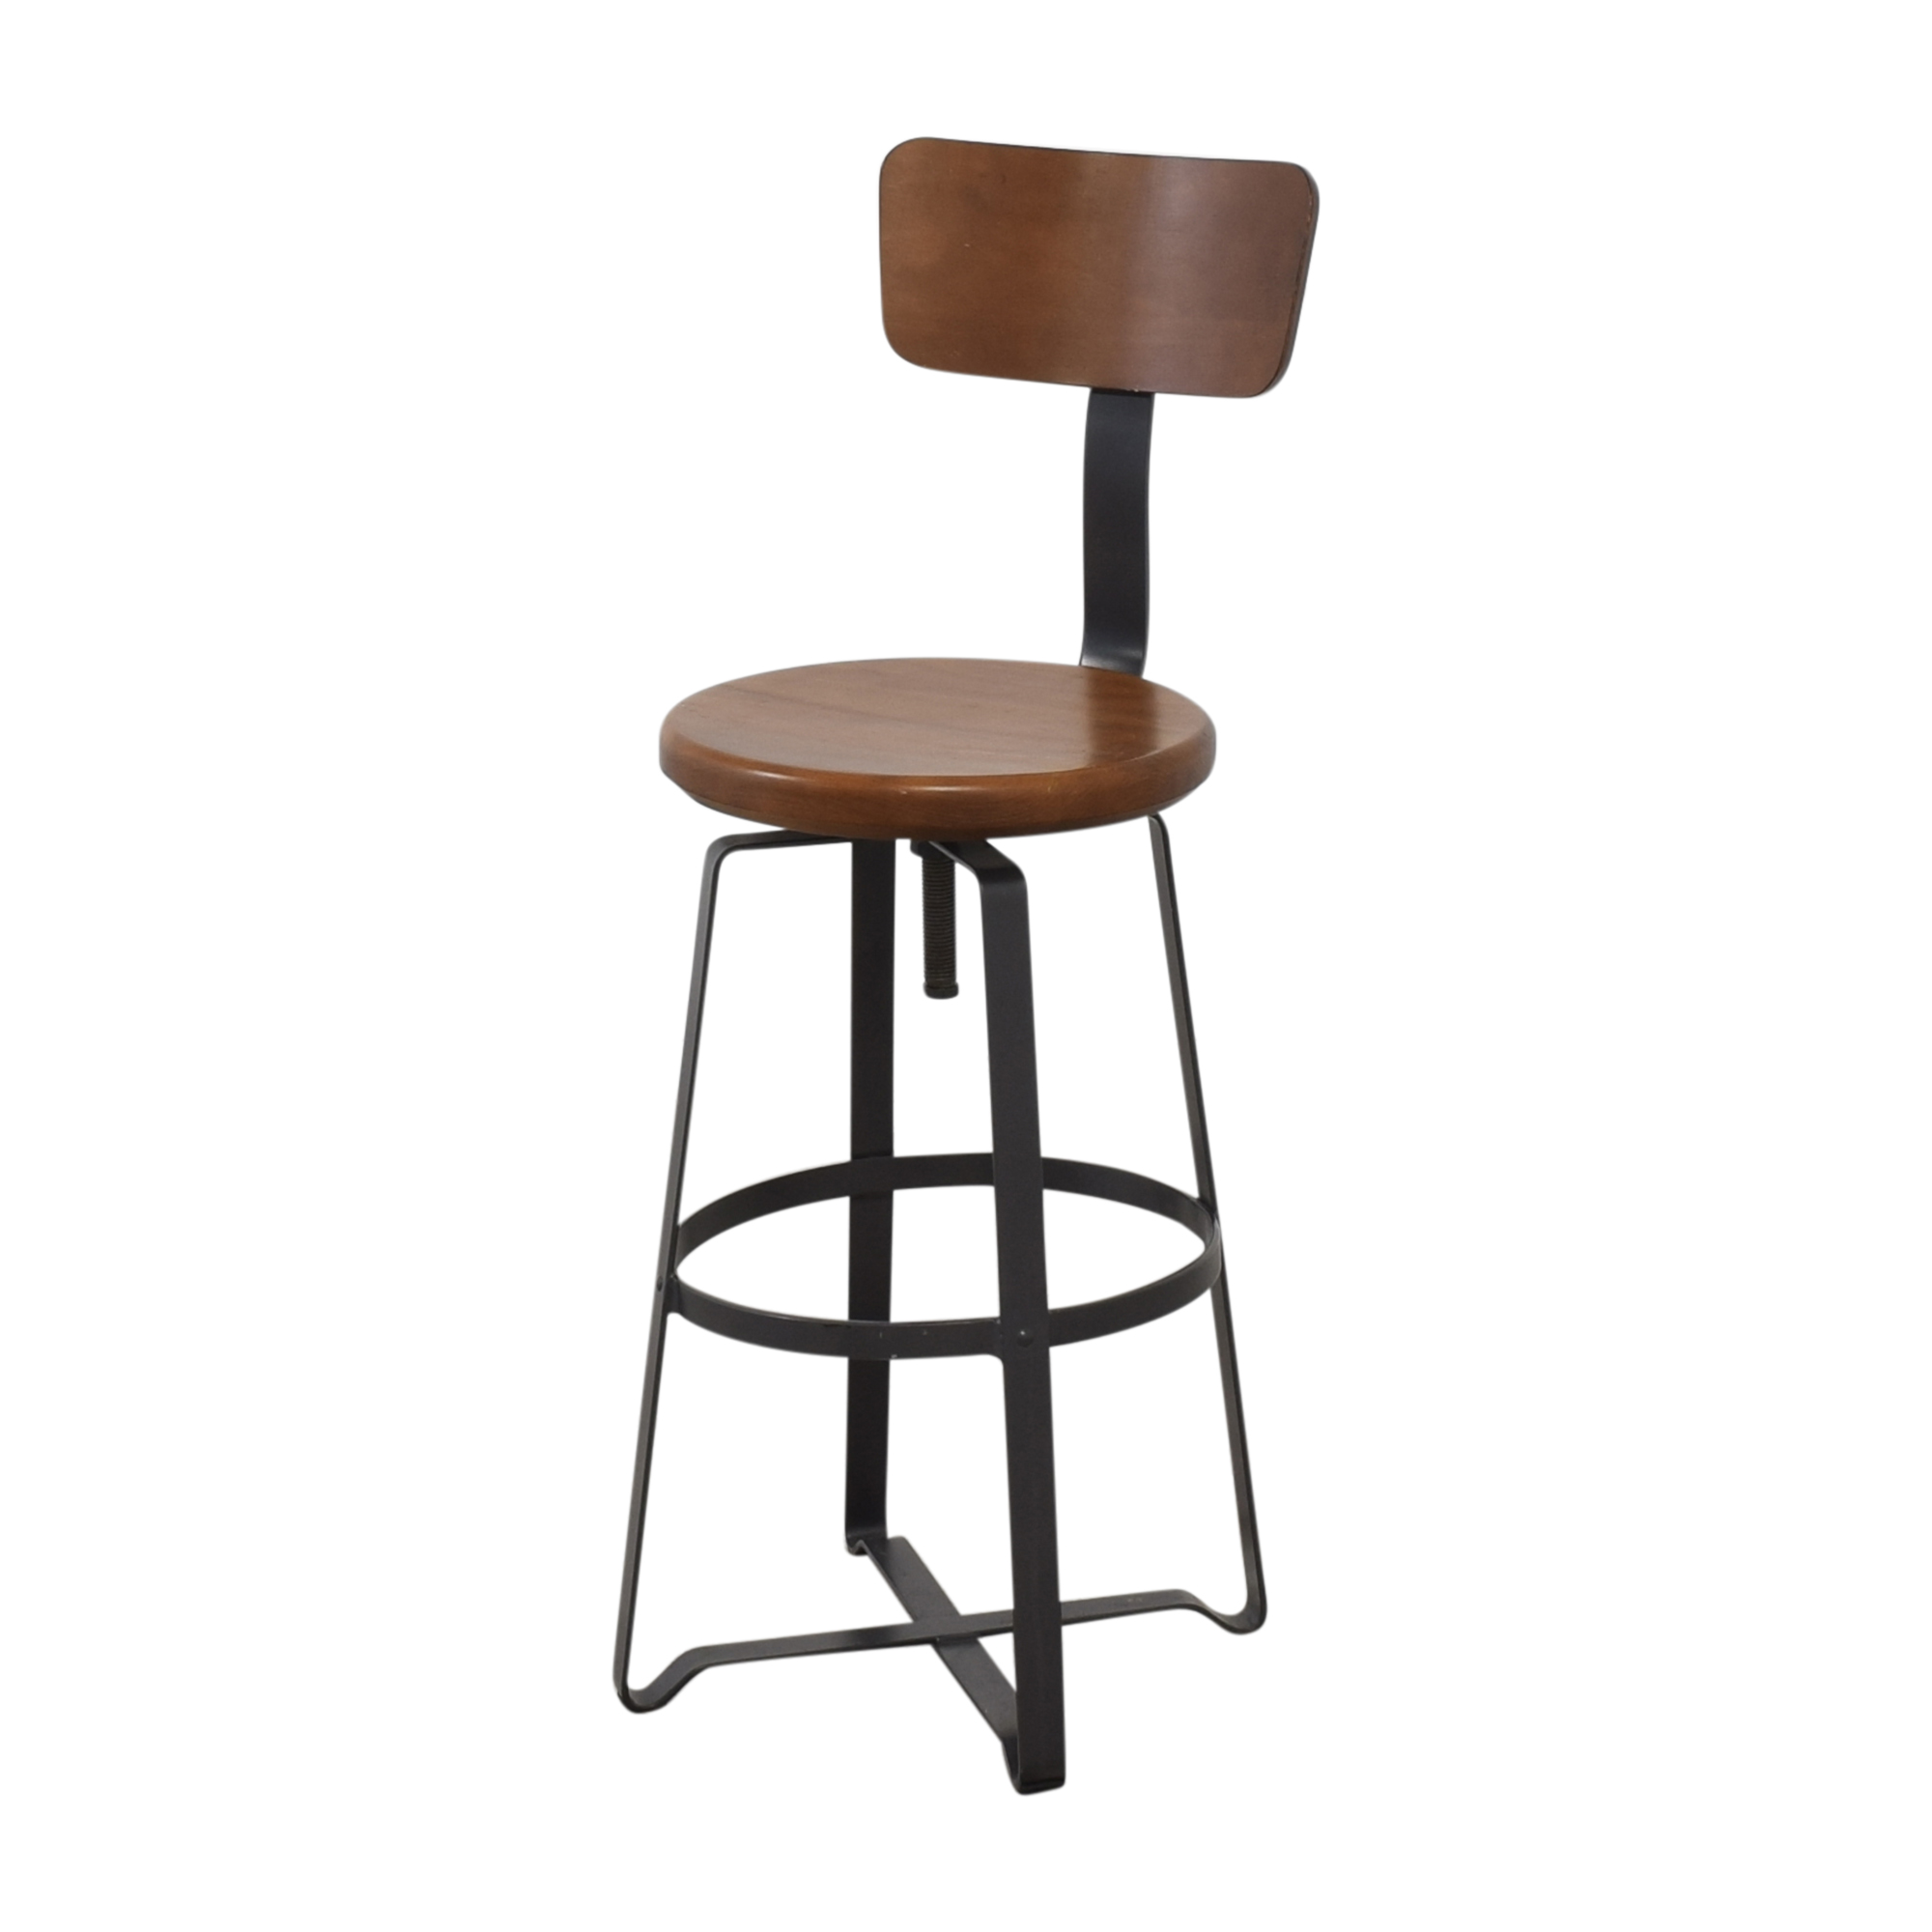 West Elm West Elm Adjustable Industrial Stool with Back nj